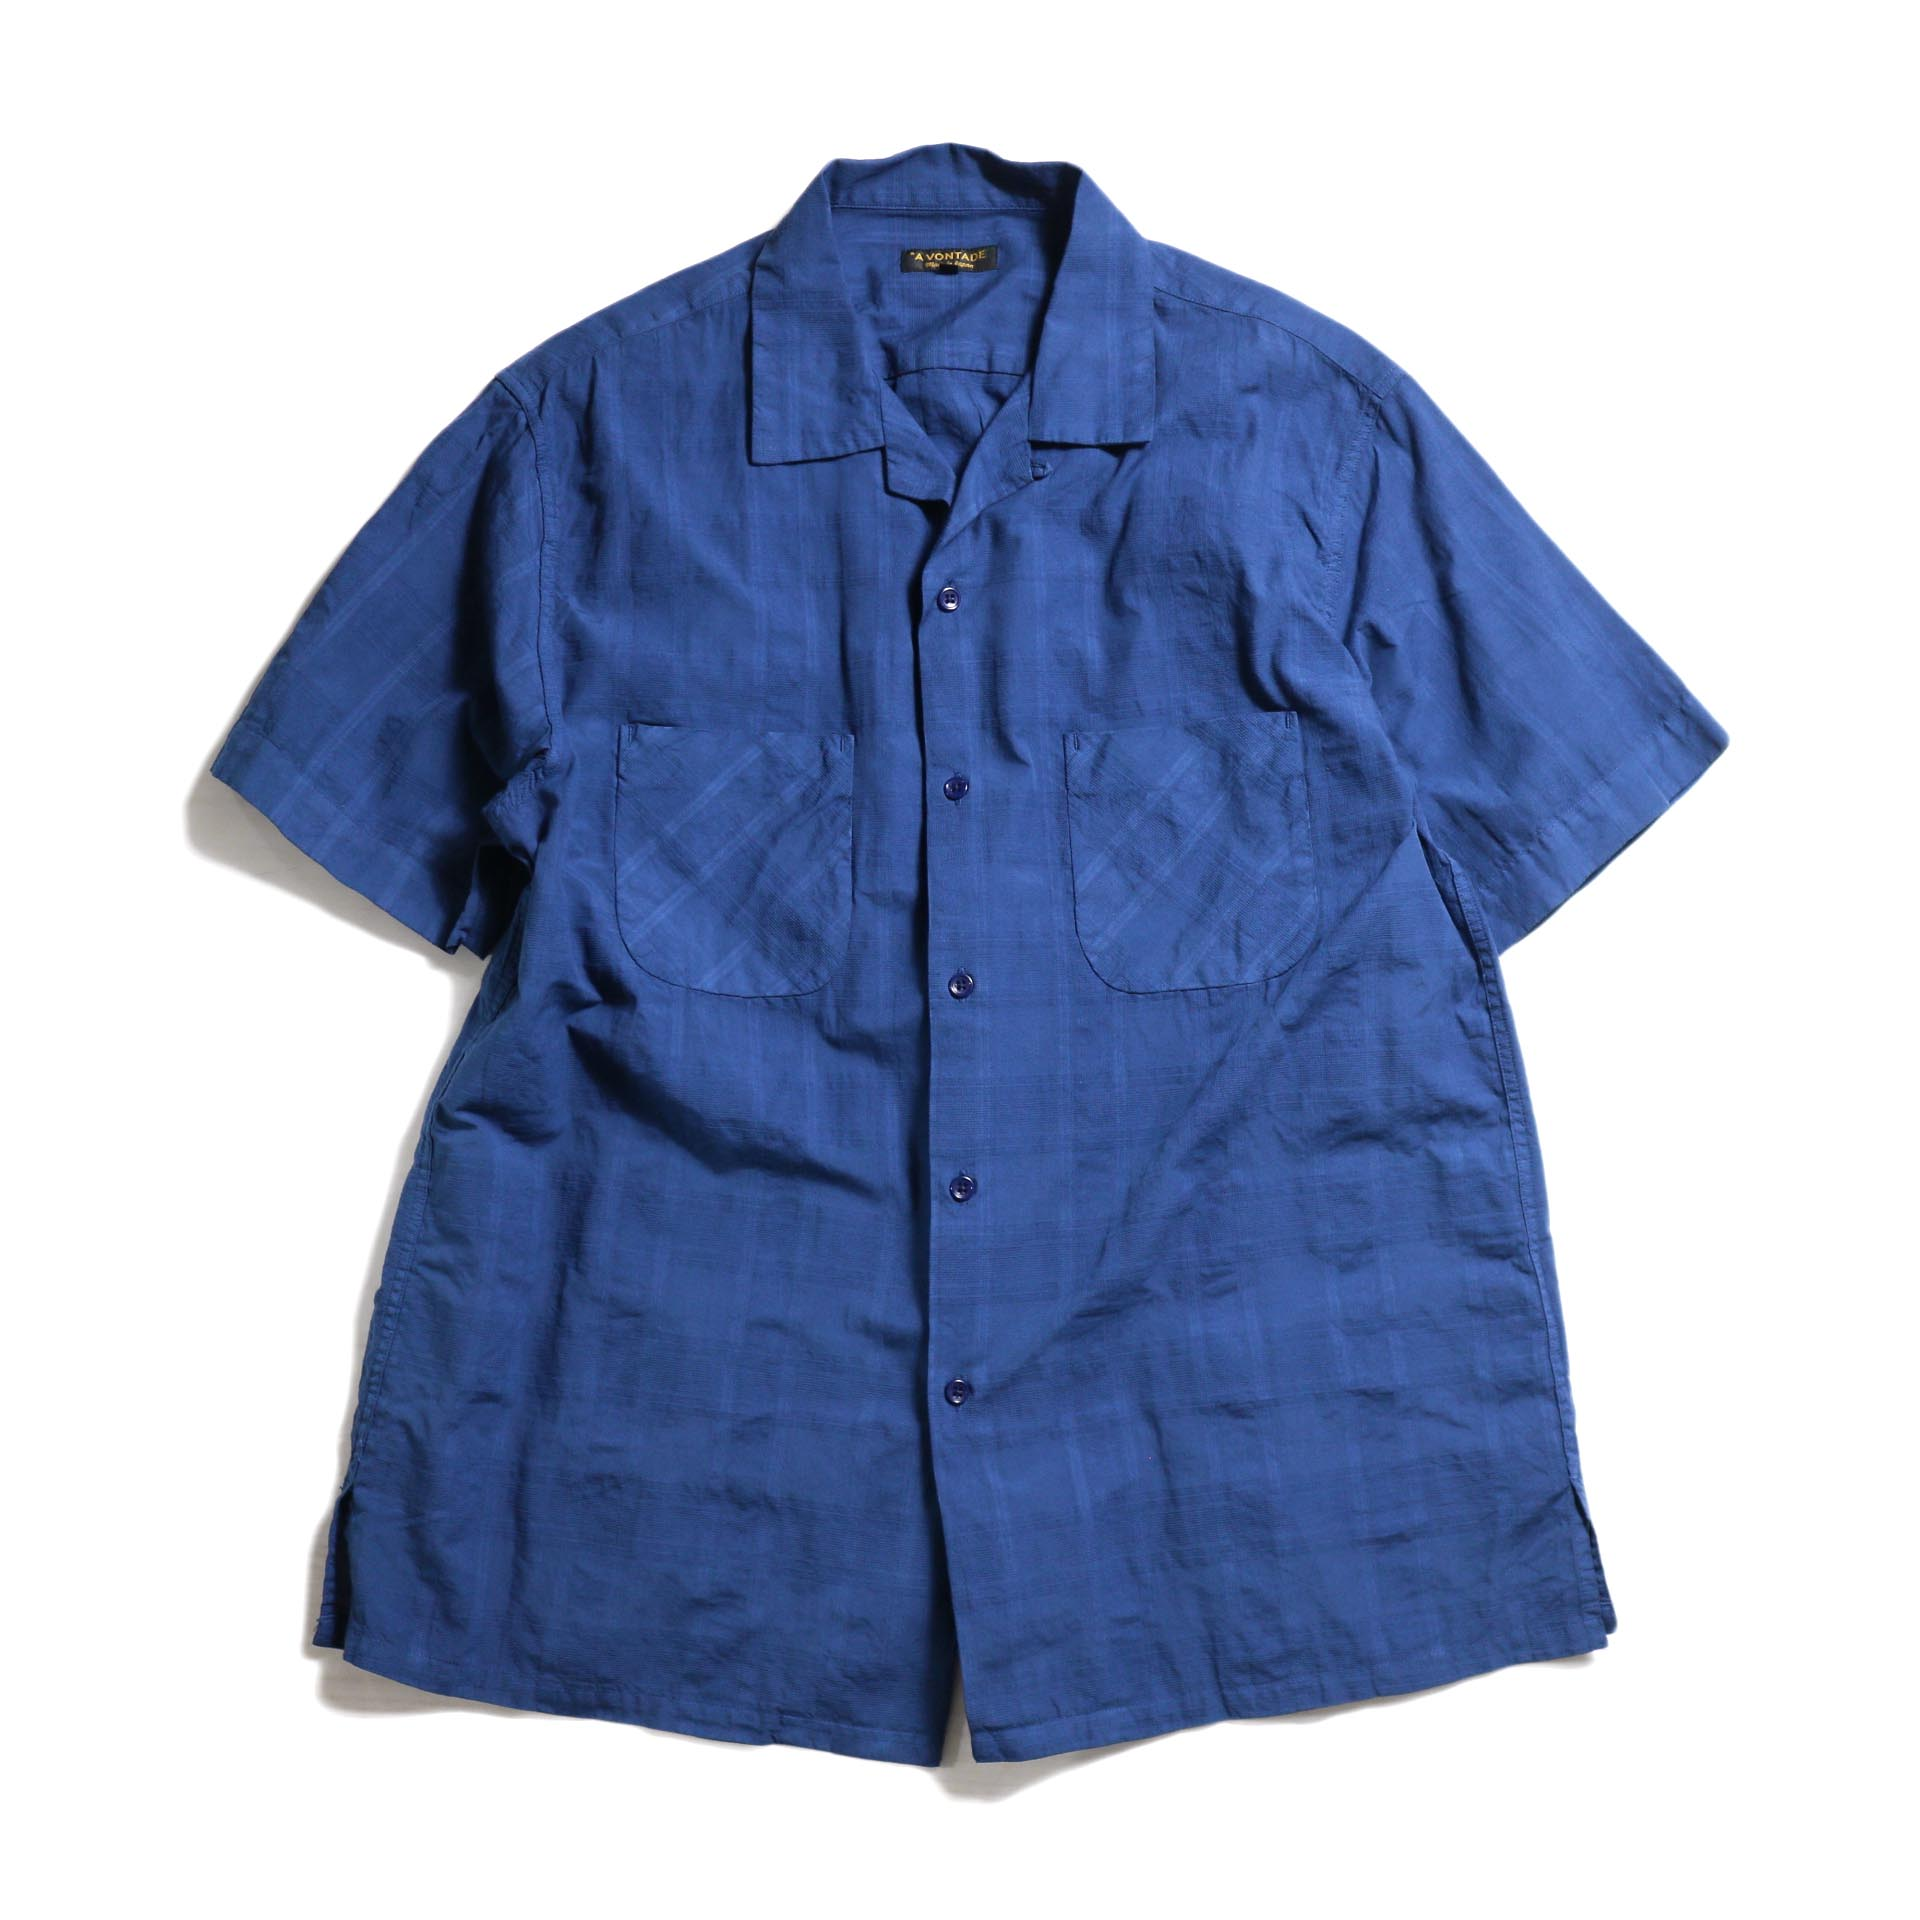 A VONTADE / Dobby Open Shirts S/S -Navy Blue